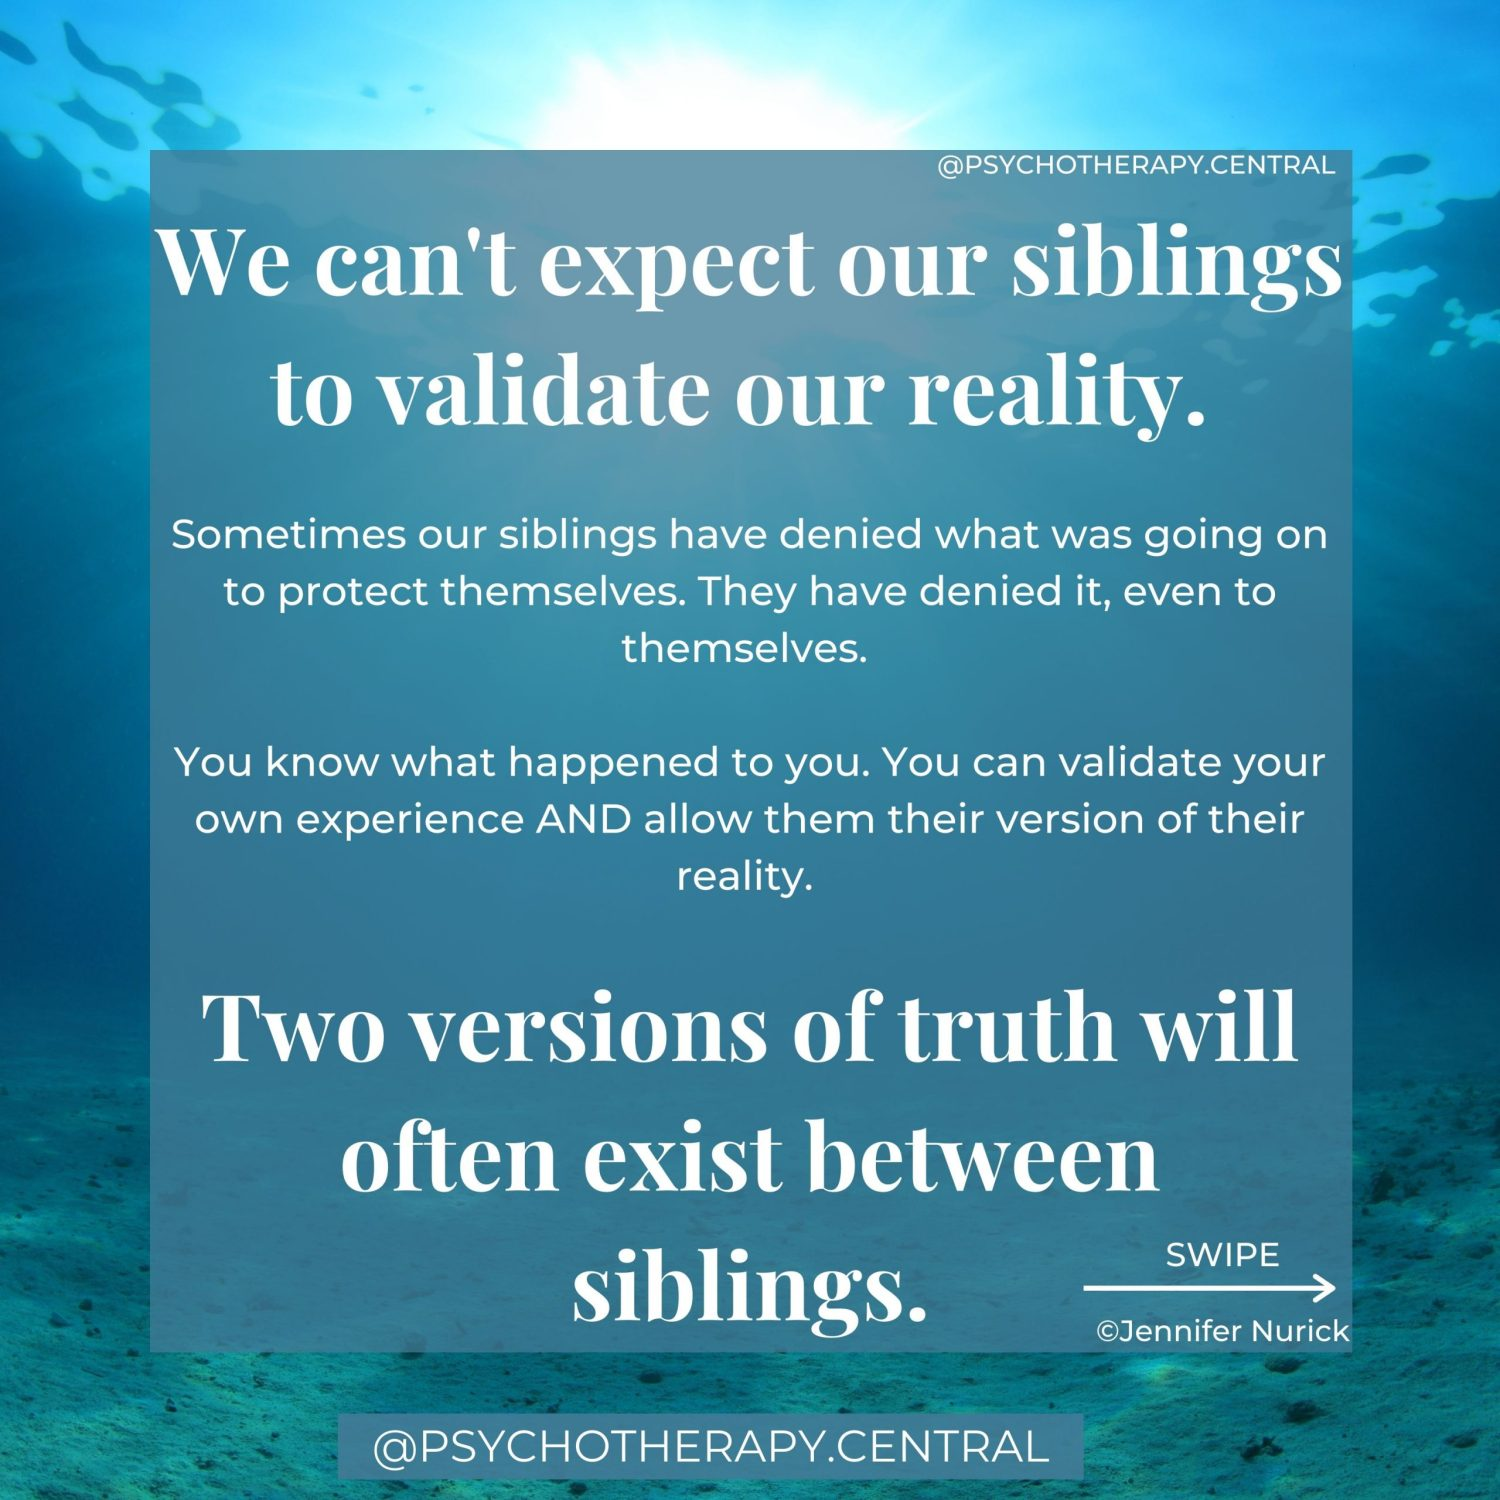 We can't expect our siblings to validate our reality.